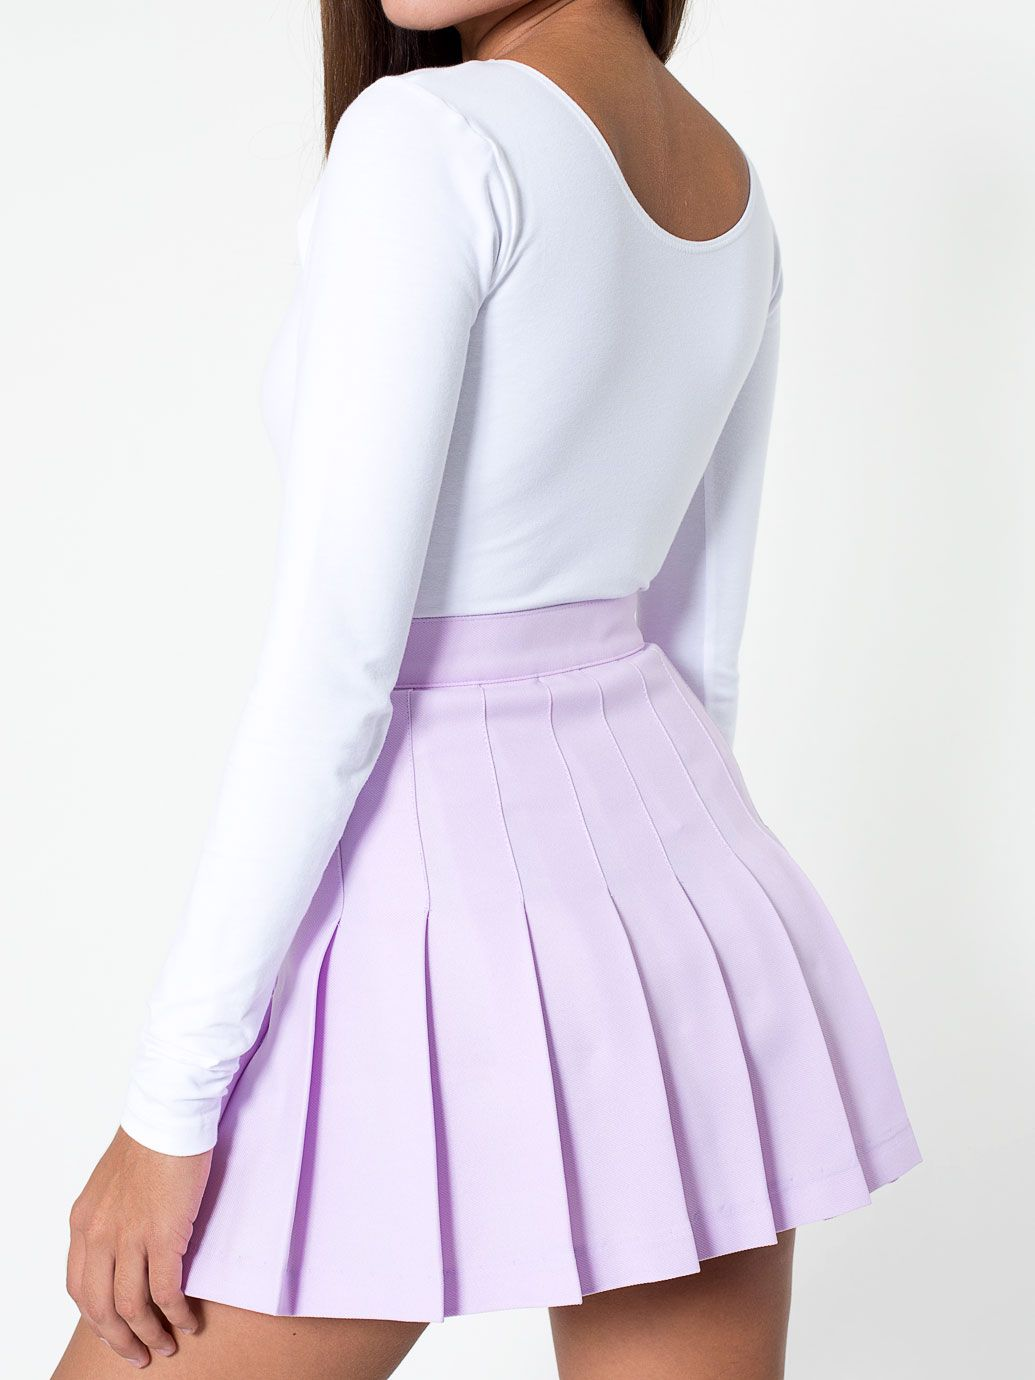 American Apparel Tennis Skirt Female Purple 83564ef52